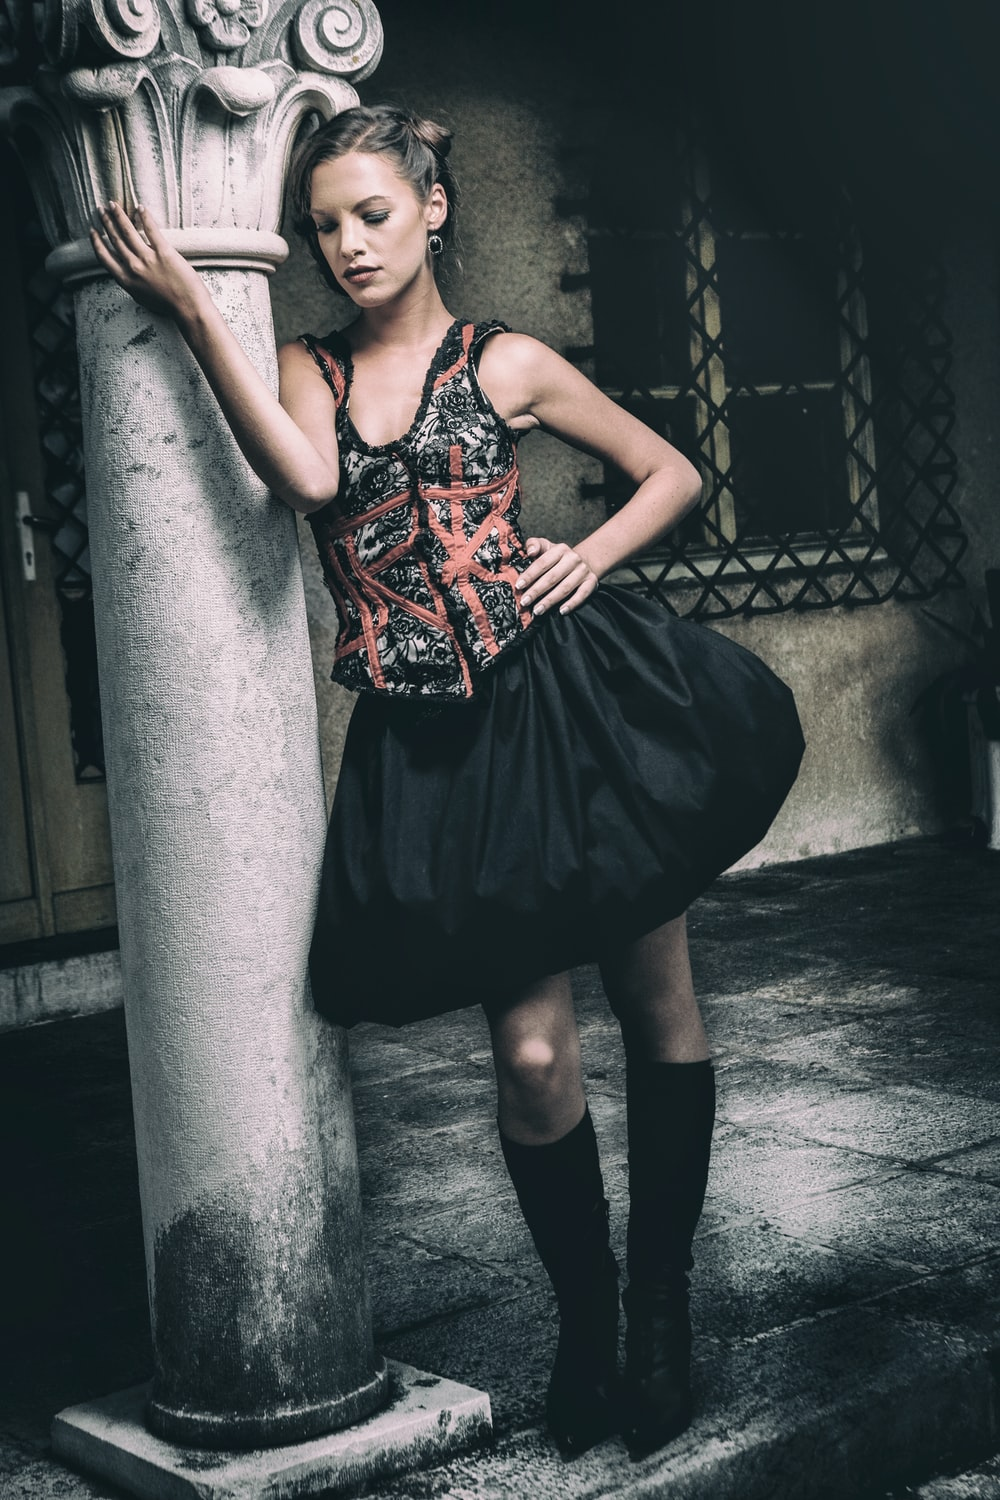 woman in black and red spaghetti strap dress leaning on gray concrete post